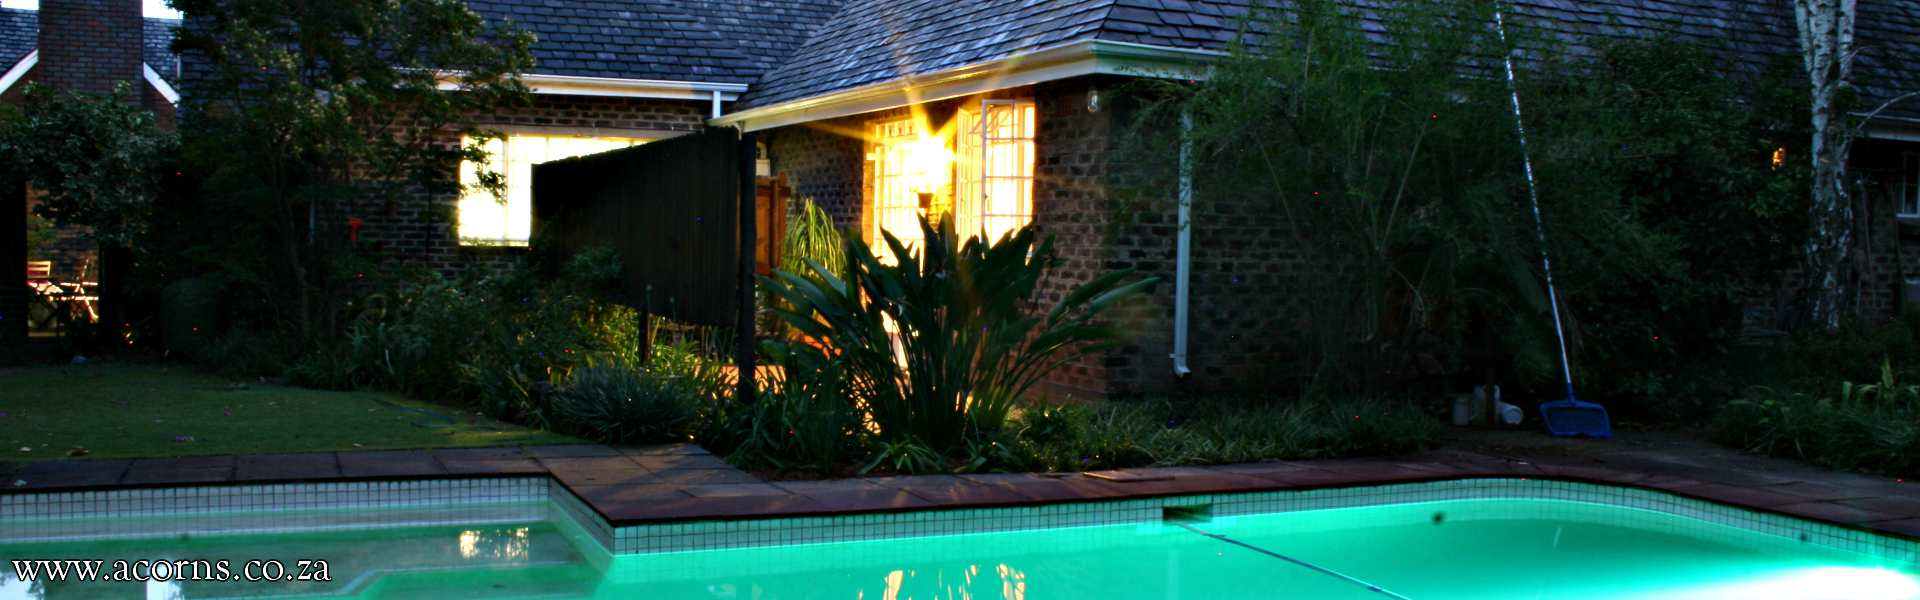 Acorns on 8th Self-catering accommodation in Parktown North, Johannesburg